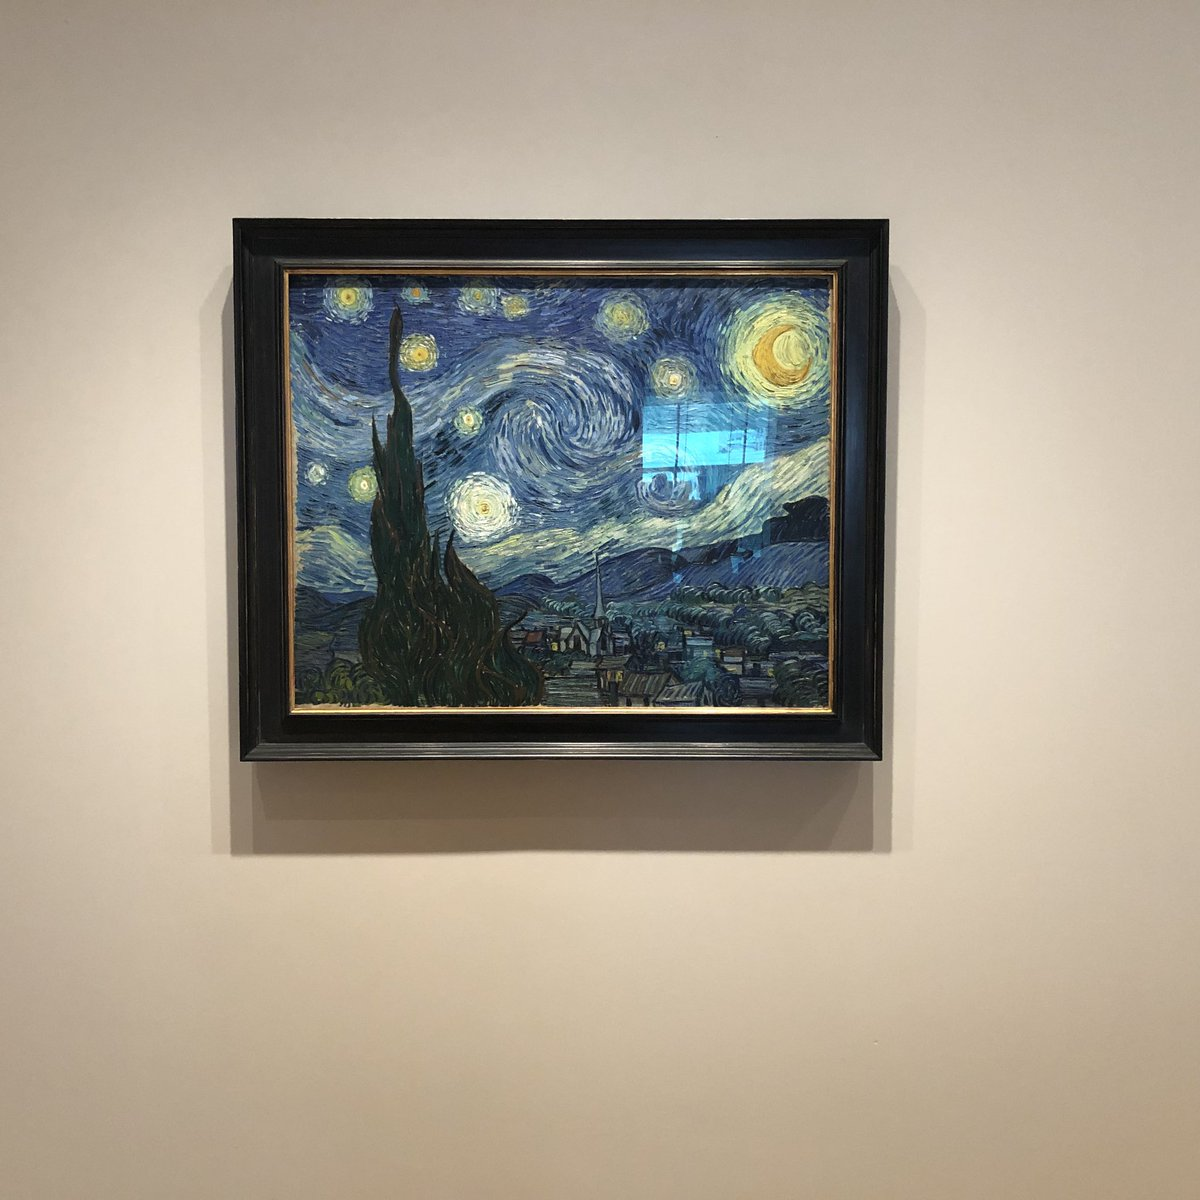 Yikes re the hair on Van Goghs `Starry Night but what about the horrible glare from across the room!? Please move that painting OVER and get rid of hairs, @MuseumModernArt twitter.com/nfreeman1234/s…